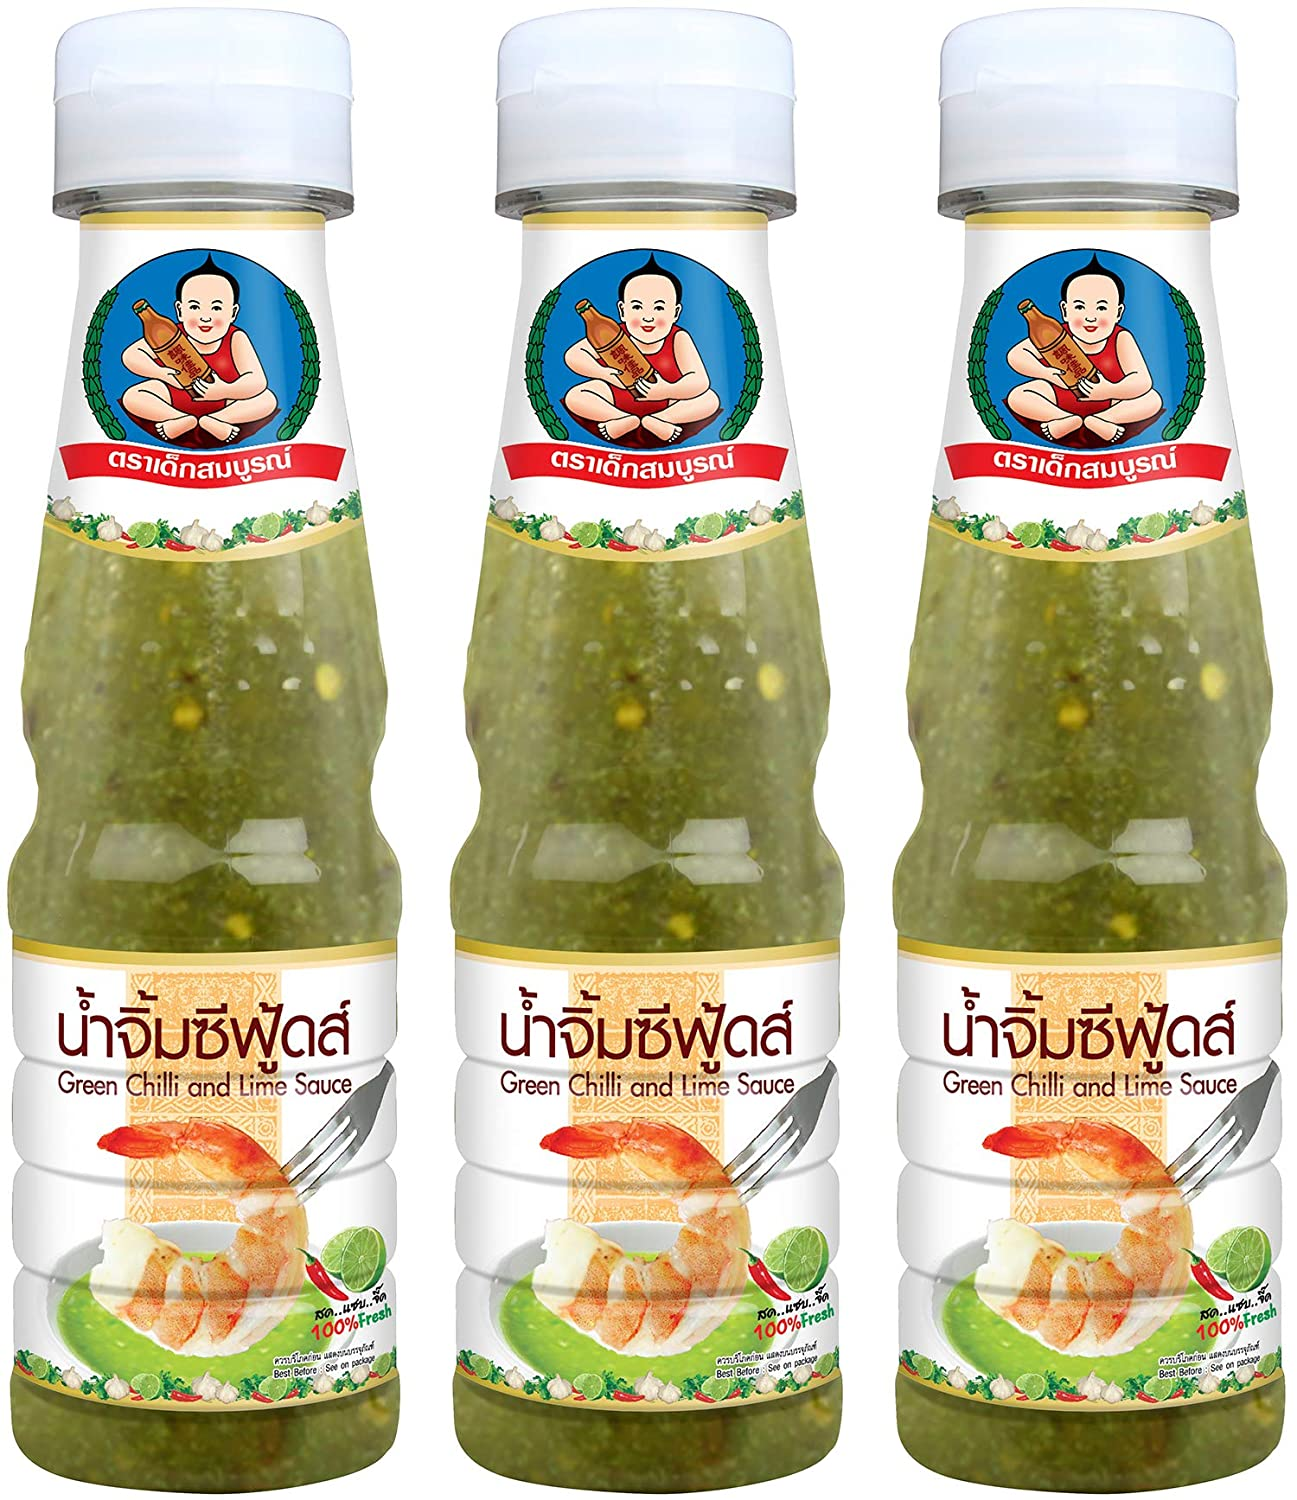 Healthy Boy Seafood Dipping Sauce Green Chili Lime 6 Ounces Product Of Thailand Pack Of 3 Walmart Com Walmart Com Amsr how do i like it? sas asmr seafood sauce lobster boil eating sounds no talking! healthy boy seafood dipping sauce green chili lime 6 ounces product of thailand pack of 3 walmart com